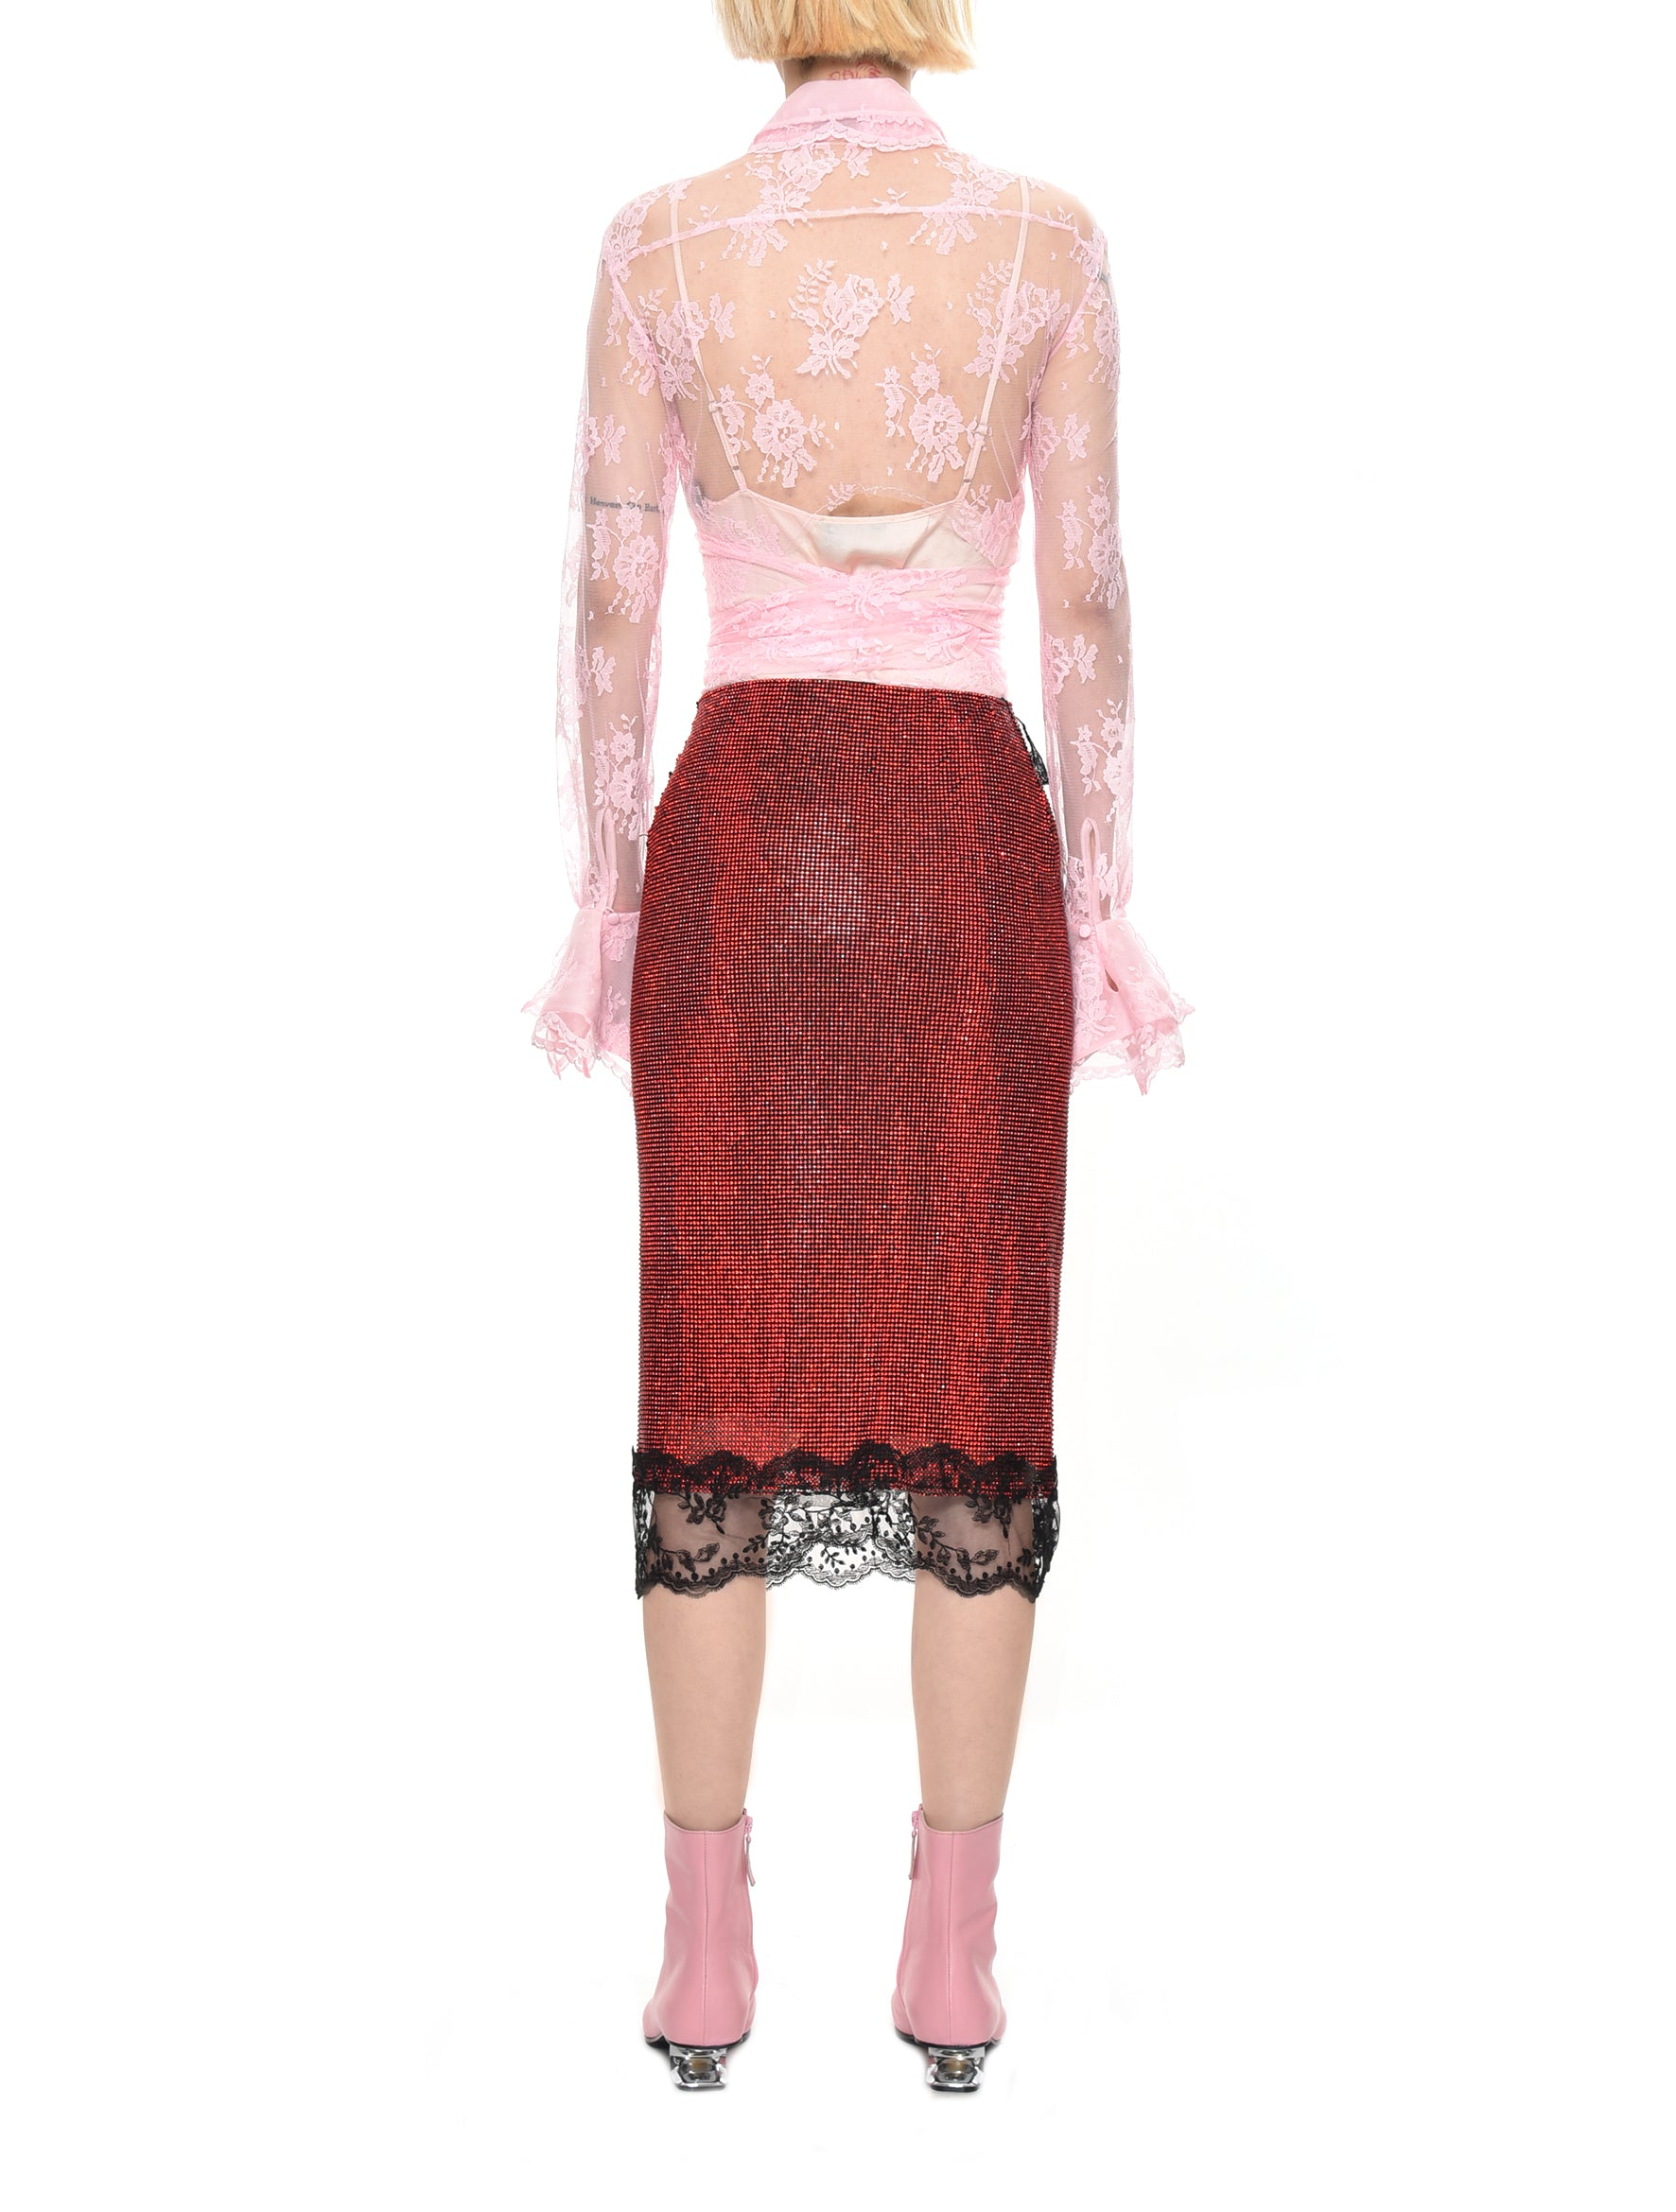 Crystal Mesh Skirt